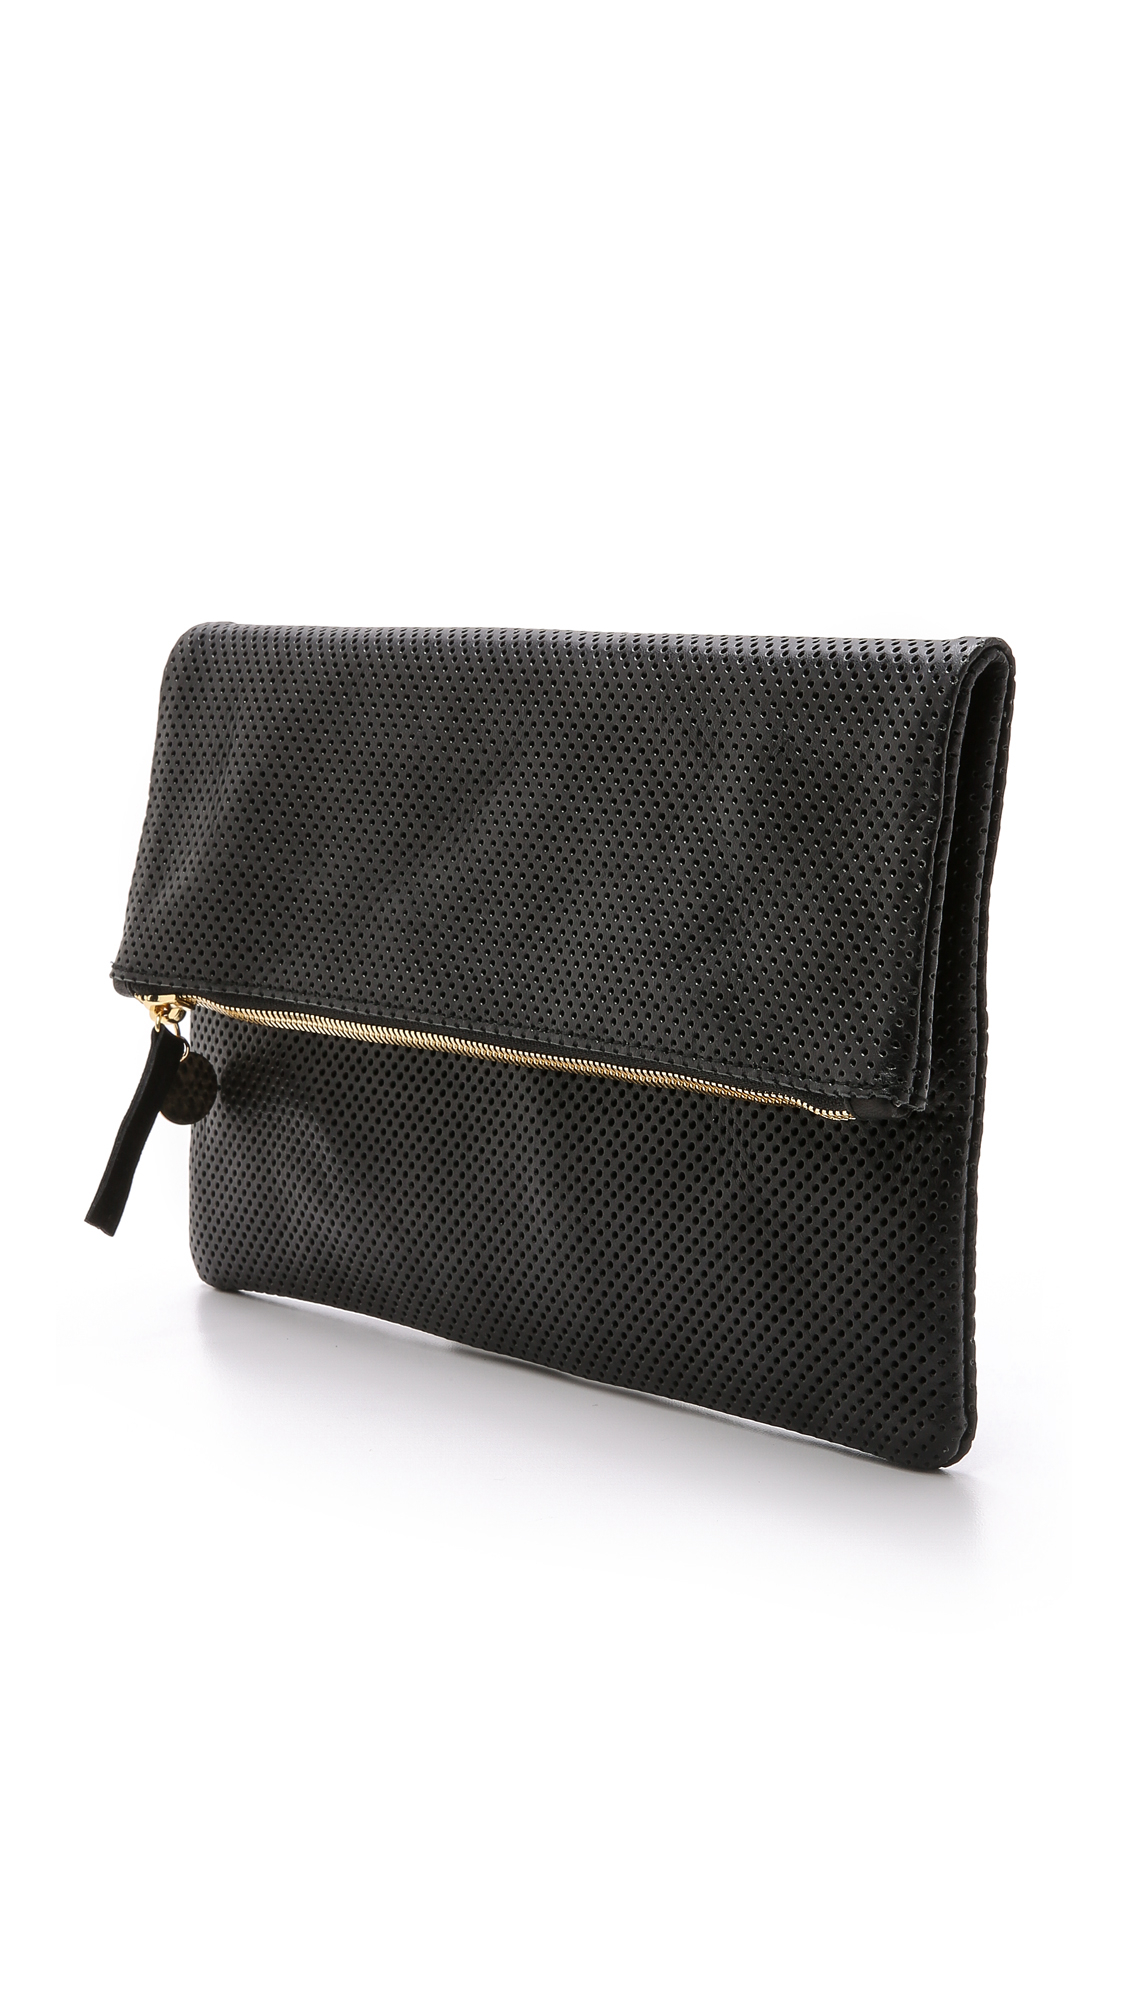 V Clare Women's Circle Clutch with Black Chain Strap avqvdz. V Clare Women's Circle Clutch with Black Chain Strap avqvdz. Navigate to Homepage. Clicking or tapping on this logo will return you to the Homepage. Search trueiupnbp.gq